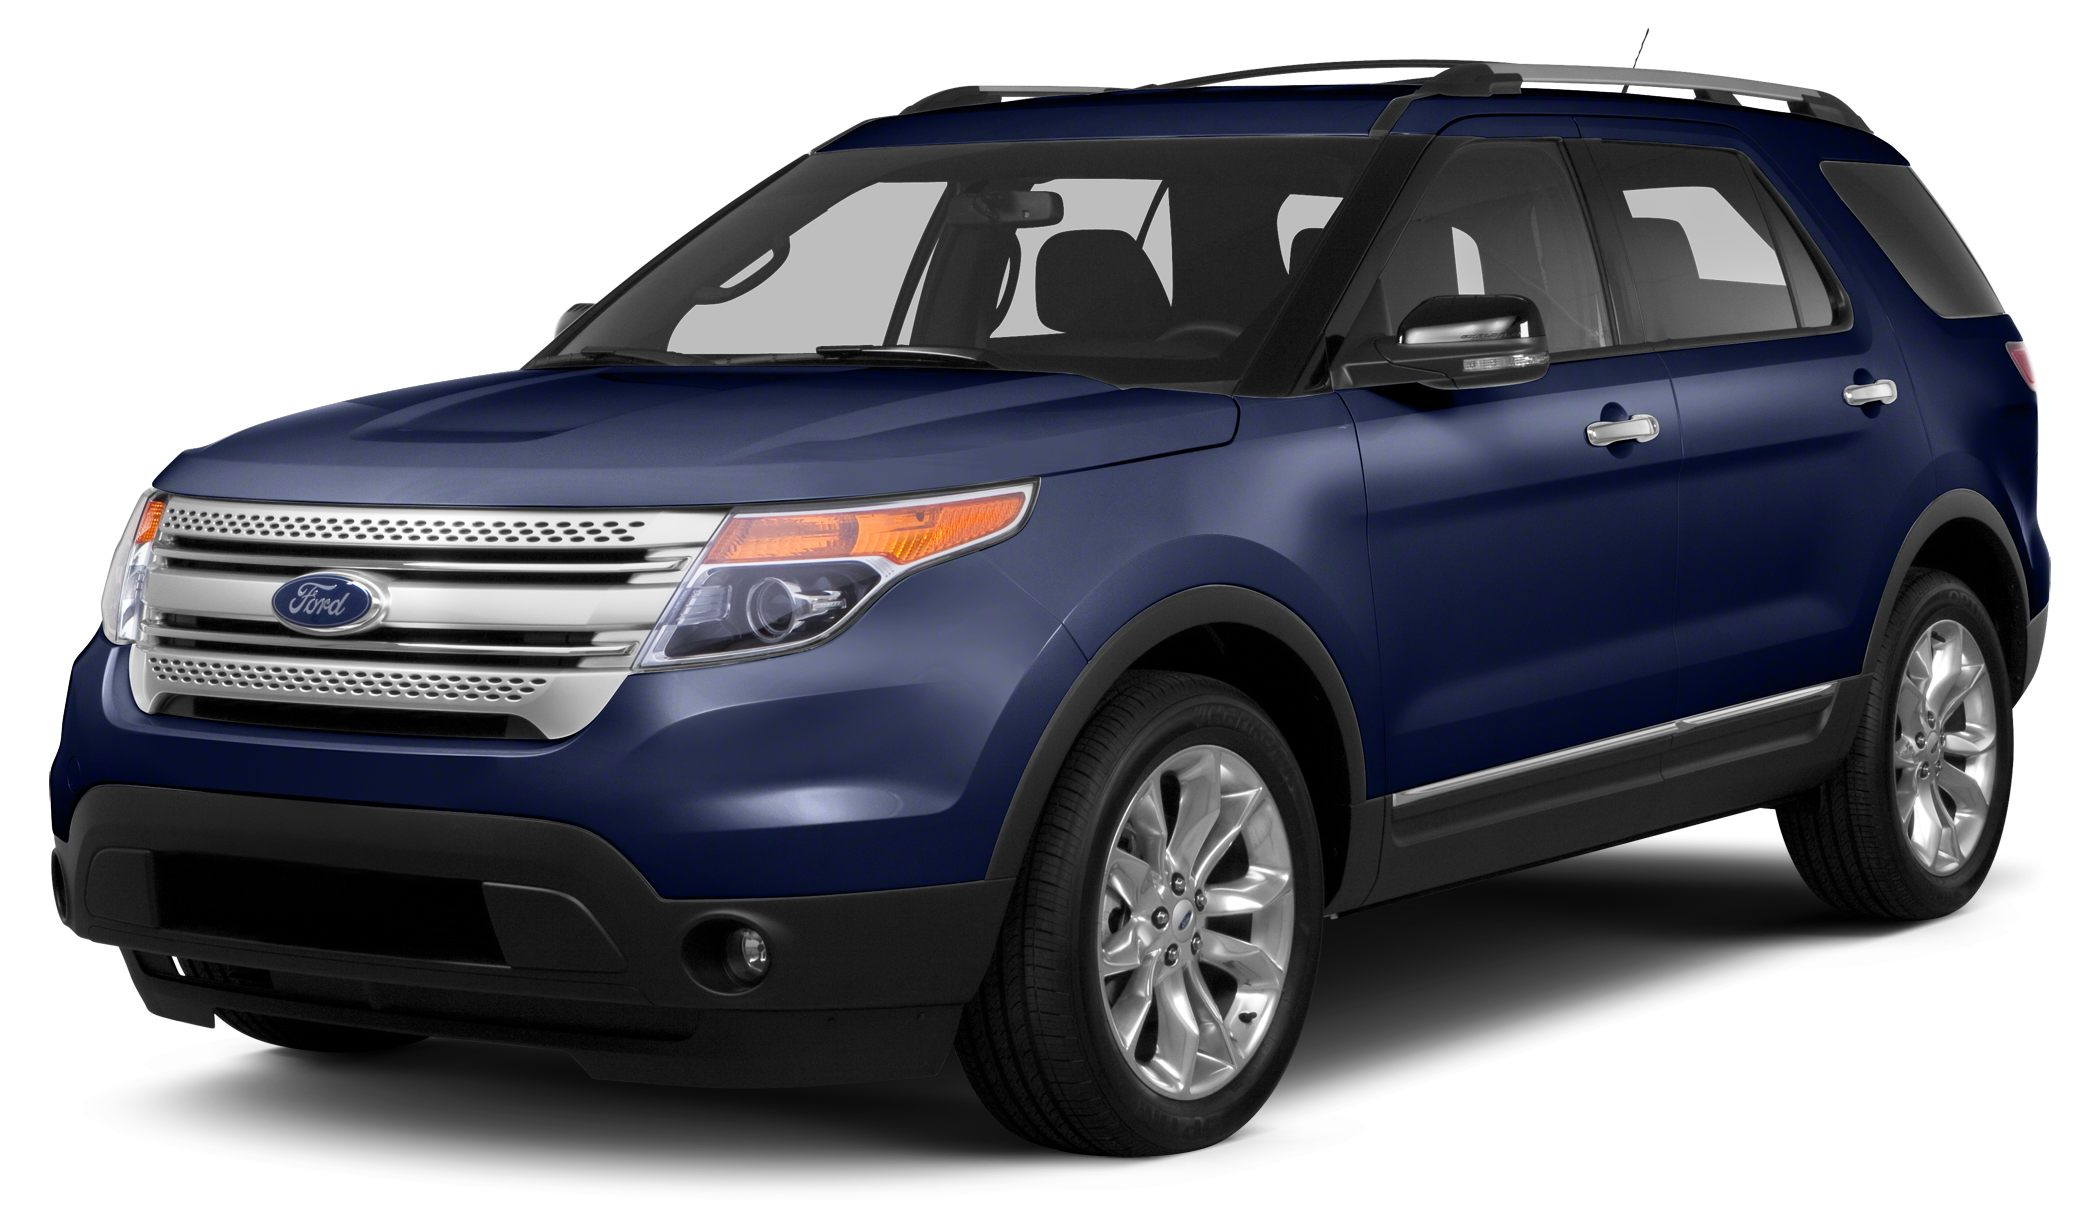 2013 Ford Explorer XLT Delivers 24 Highway MPG and 17 City MPG Carfax One-Owner Vehicle Dealer C